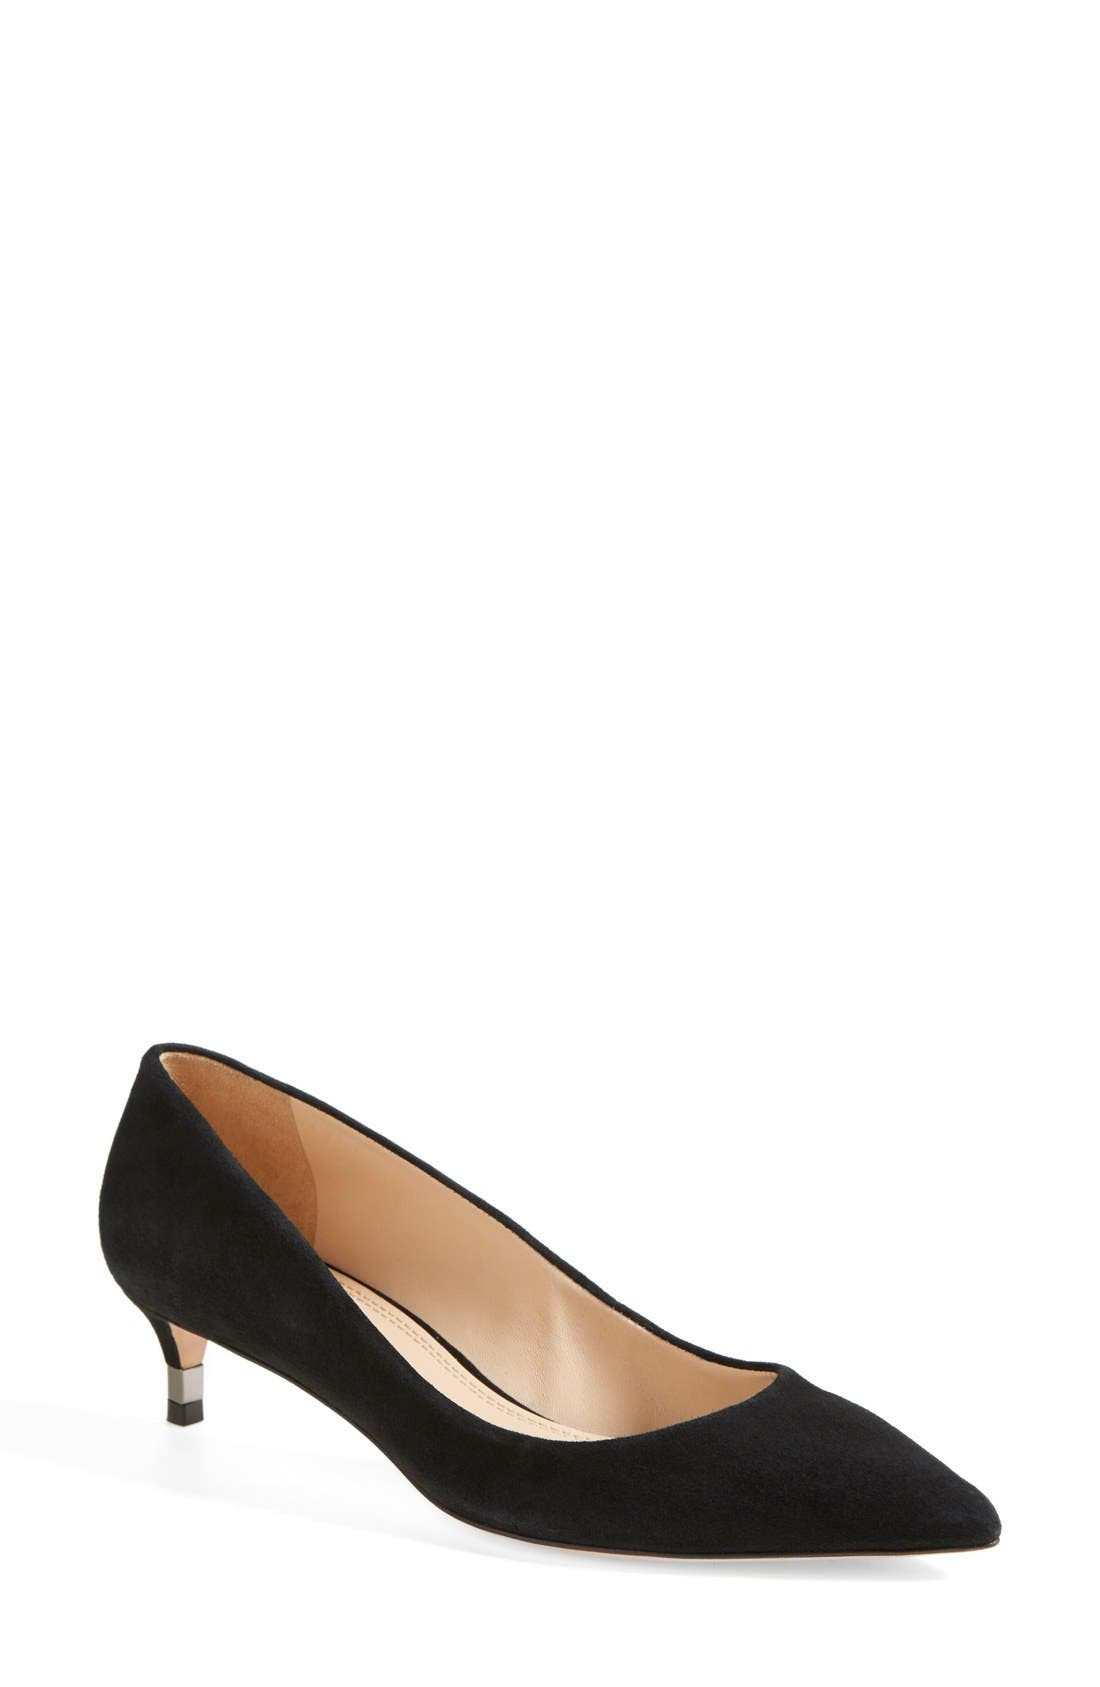 Alternate Image 1 Selected - Tory Burch 'Greenwich' Suede Pointy Toe Pump (Women)